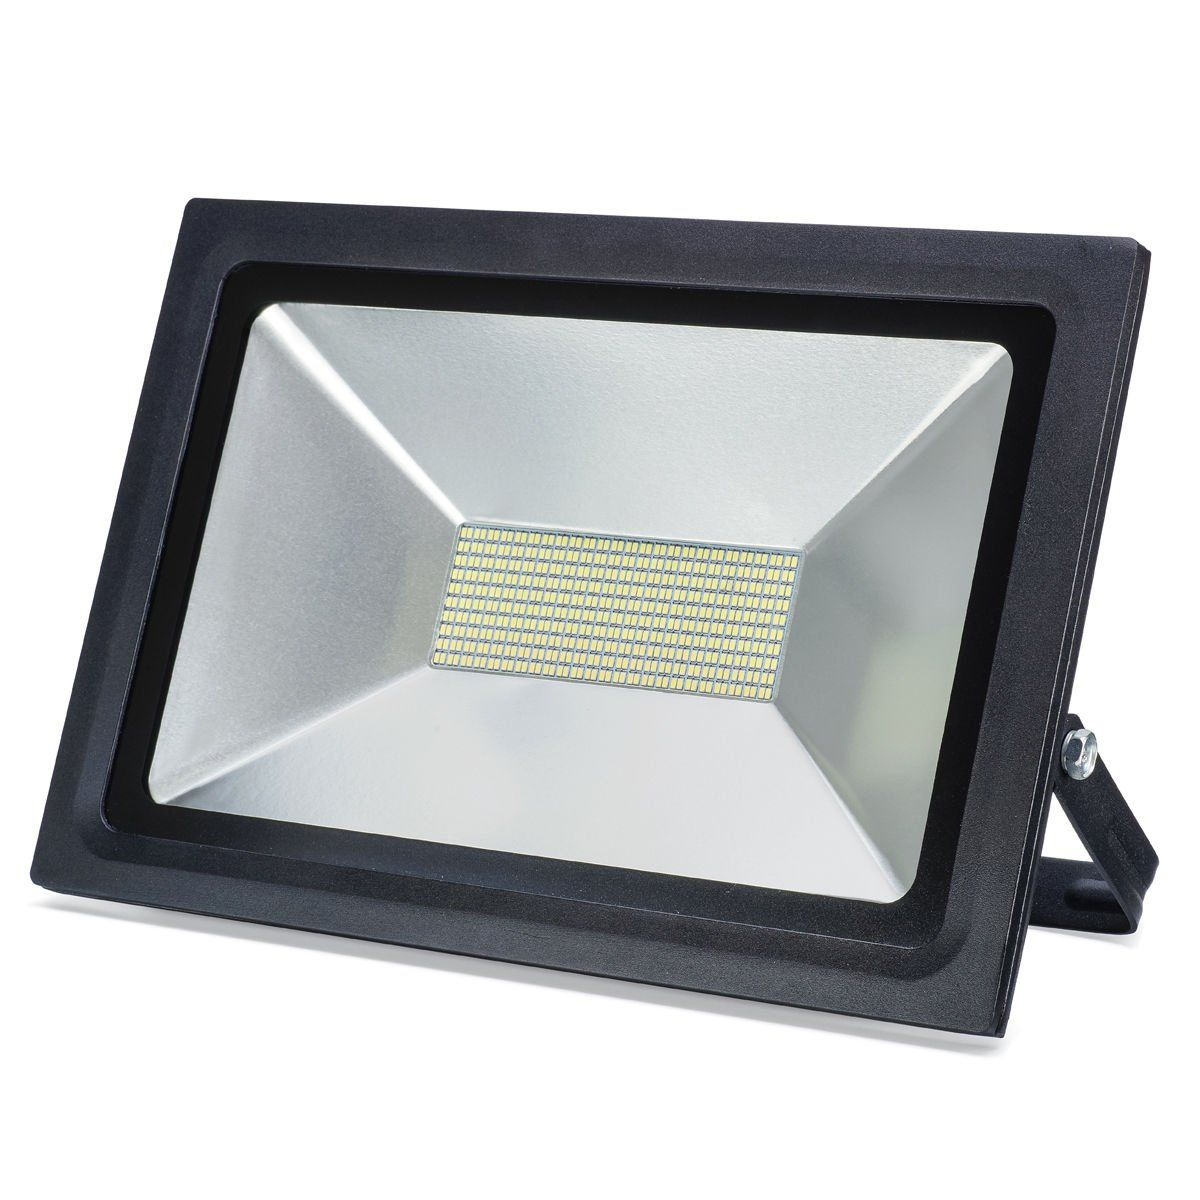 100w Led Flood Lights Outdoor Lantoo Super Bright Ip65 Waterproof Led Flood Lights 110v 8600 Lm Daylight White 5500 Flood Lights Led Flood Security Lights